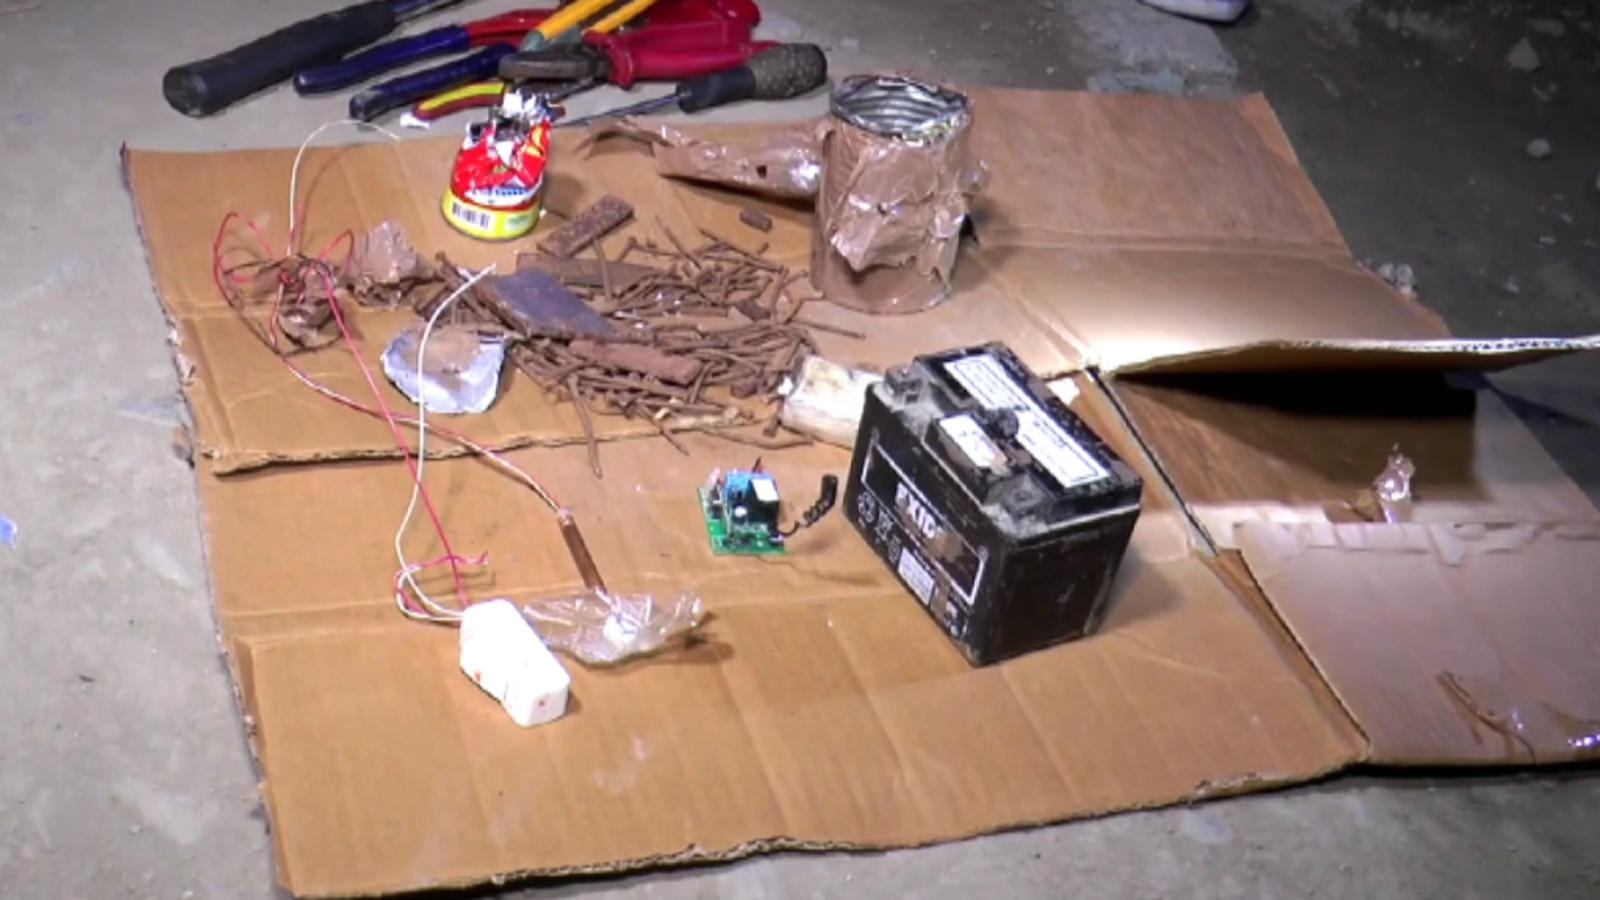 imphal-suspected-object-safely-defused-by-police-bomb-detection-and-disposal-squad